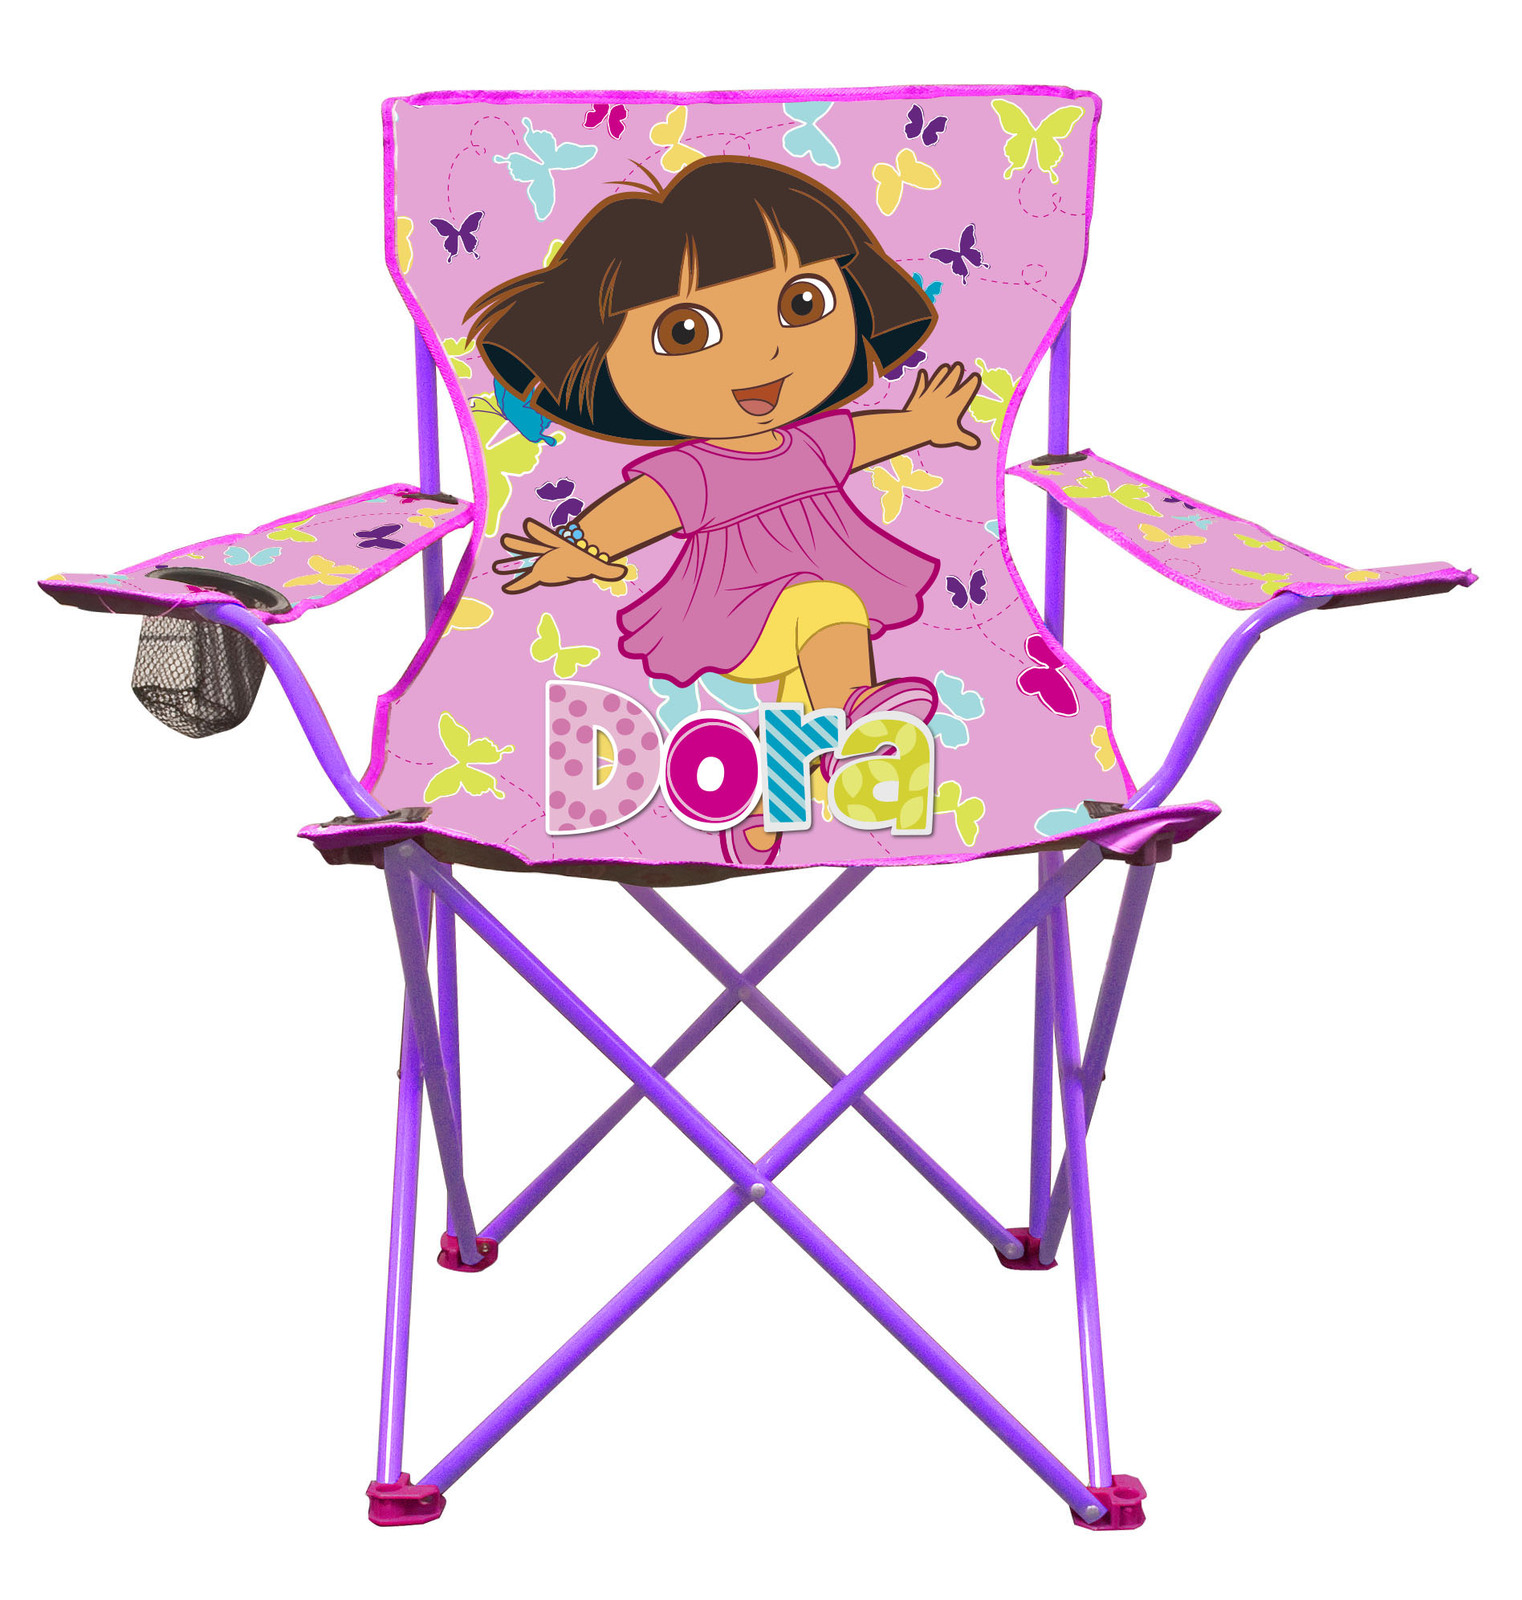 Dora The Explorer Camping Chair Small Toy At Mighty